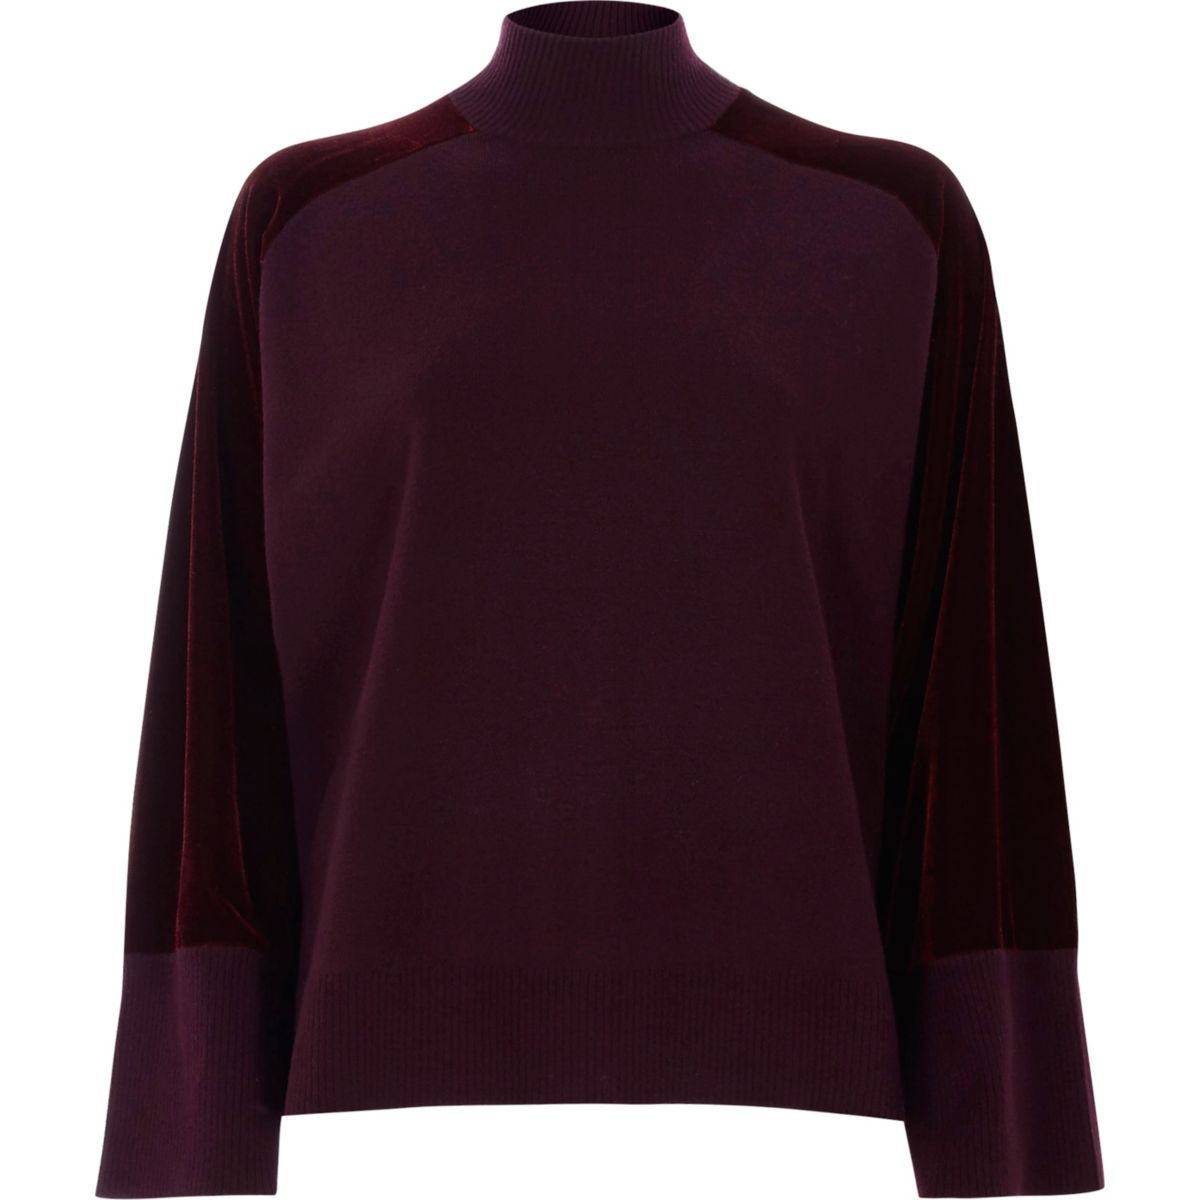 Burgundy velvet sleeve high neck knit jumper